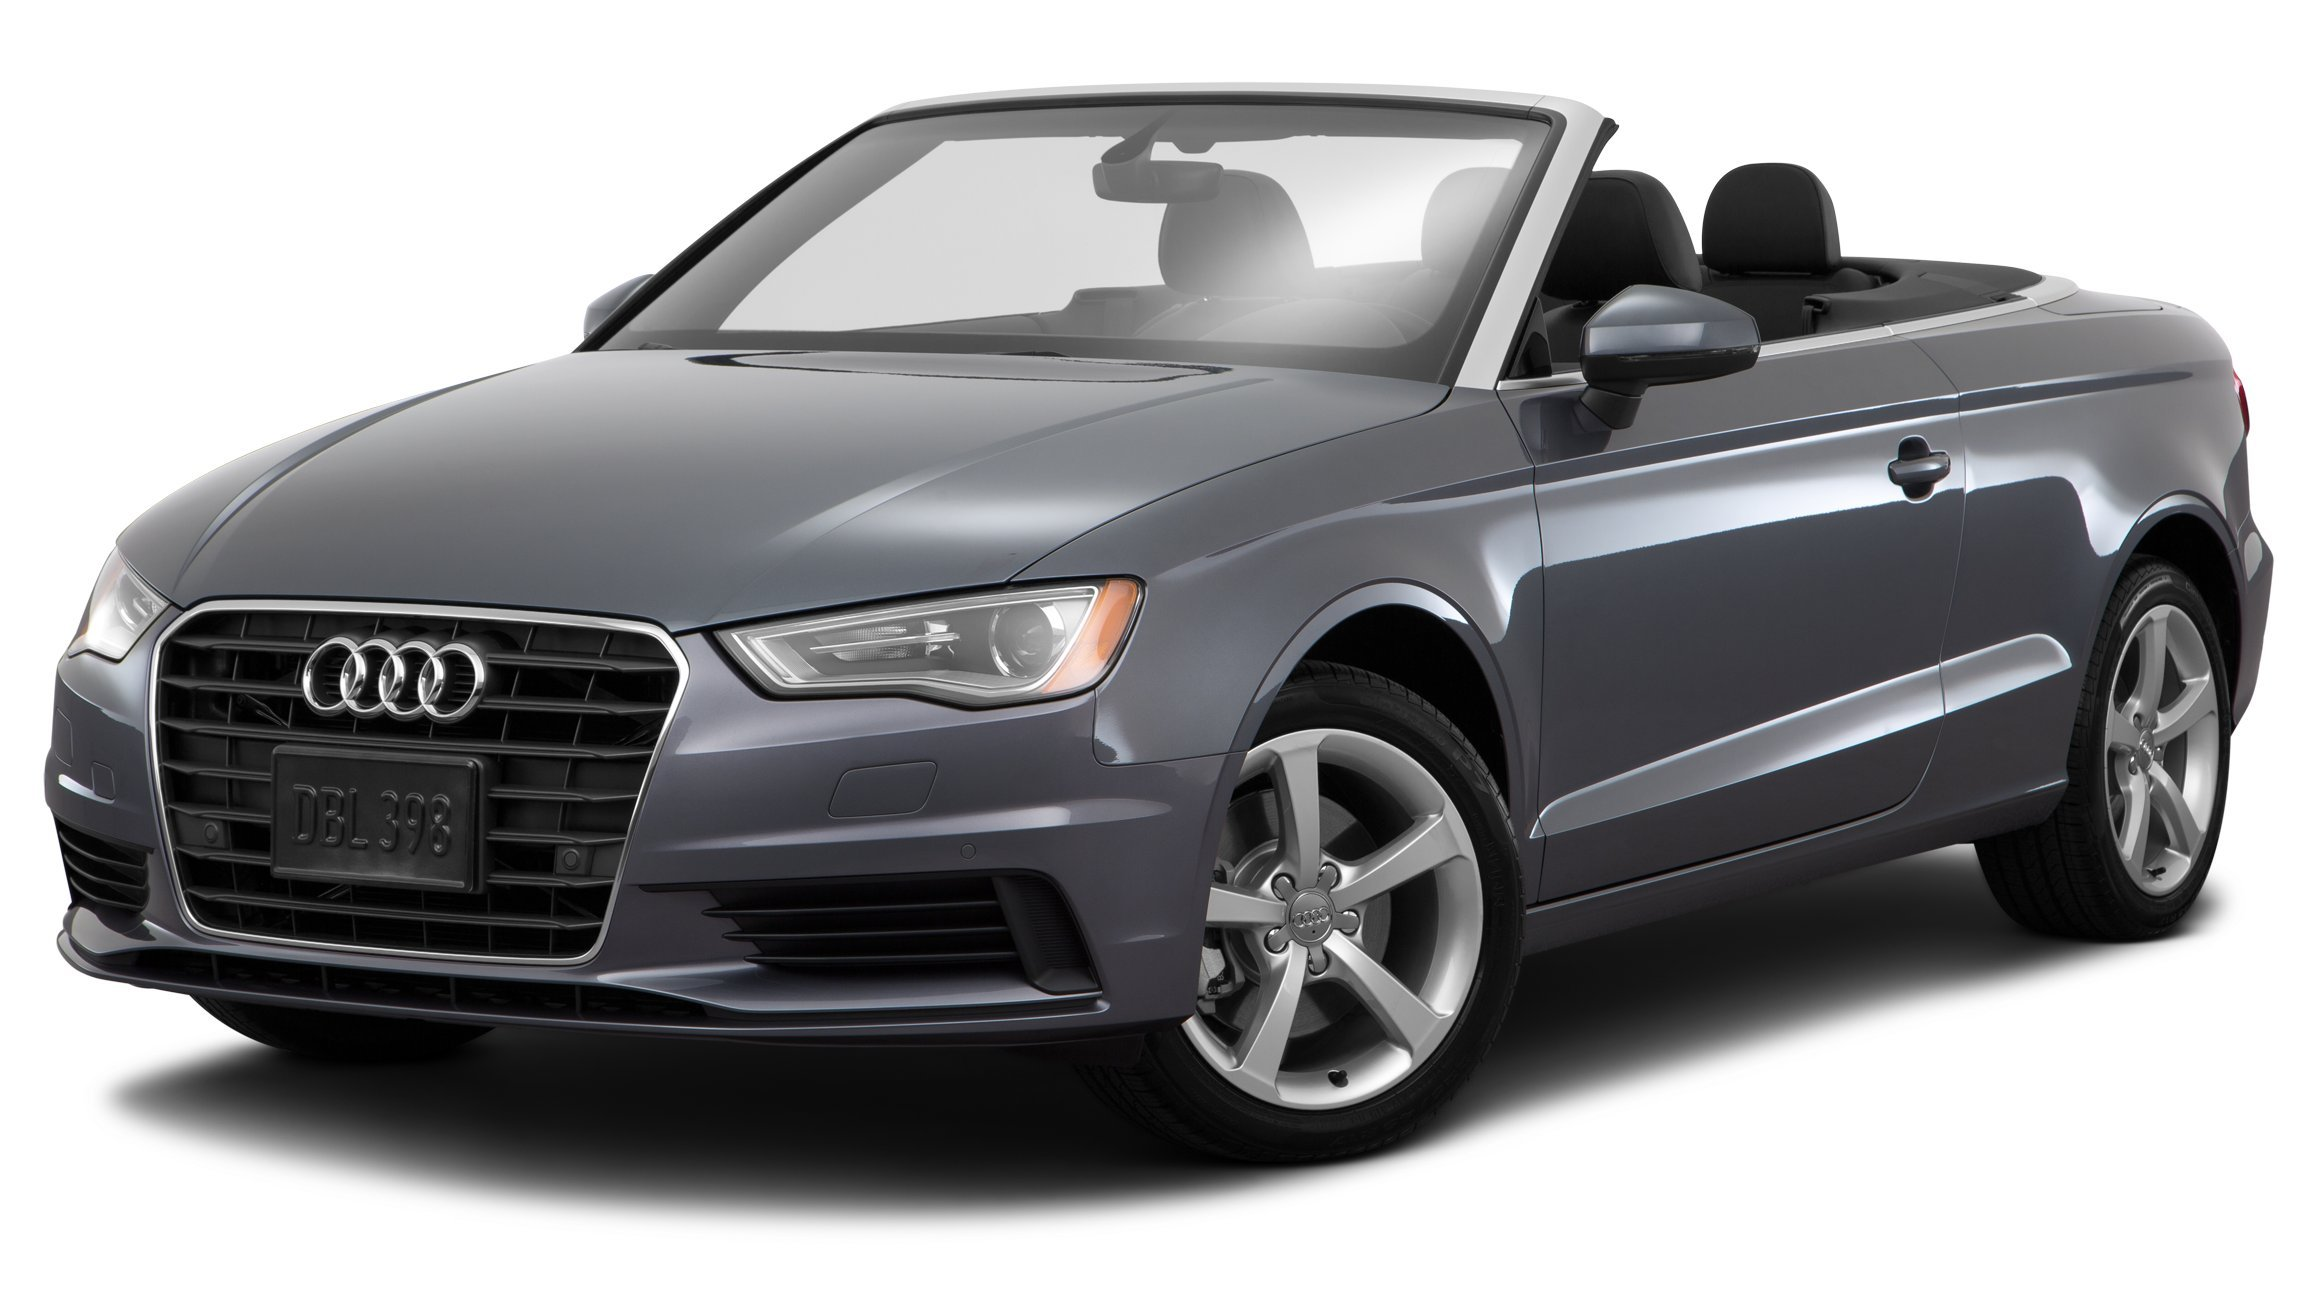 Amazon 2016 Audi A3 Reviews and Specs Vehicles